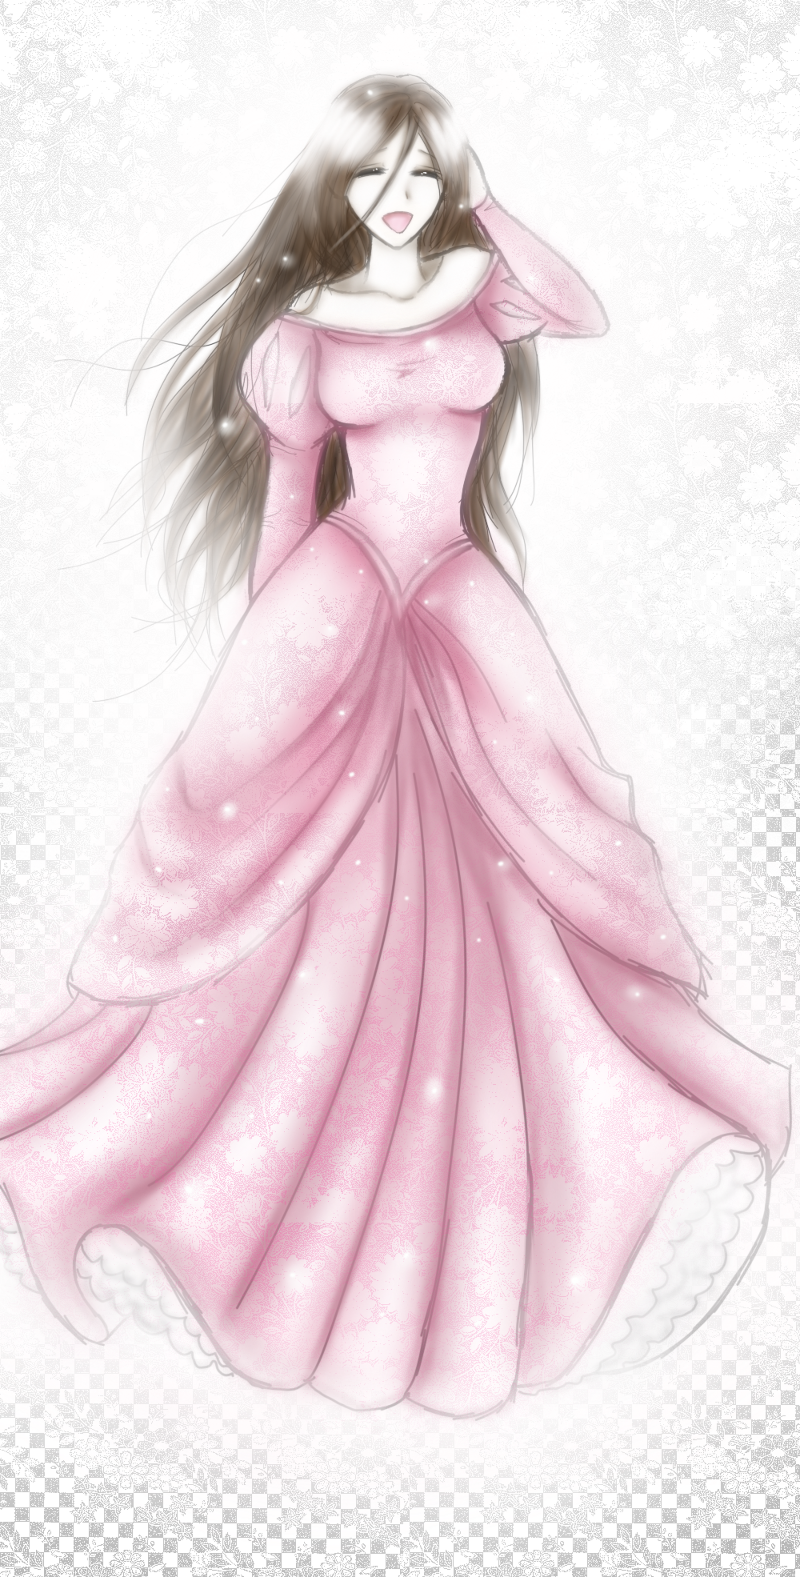 Anime Girl in Ball Gown _Other dresses_dressesss